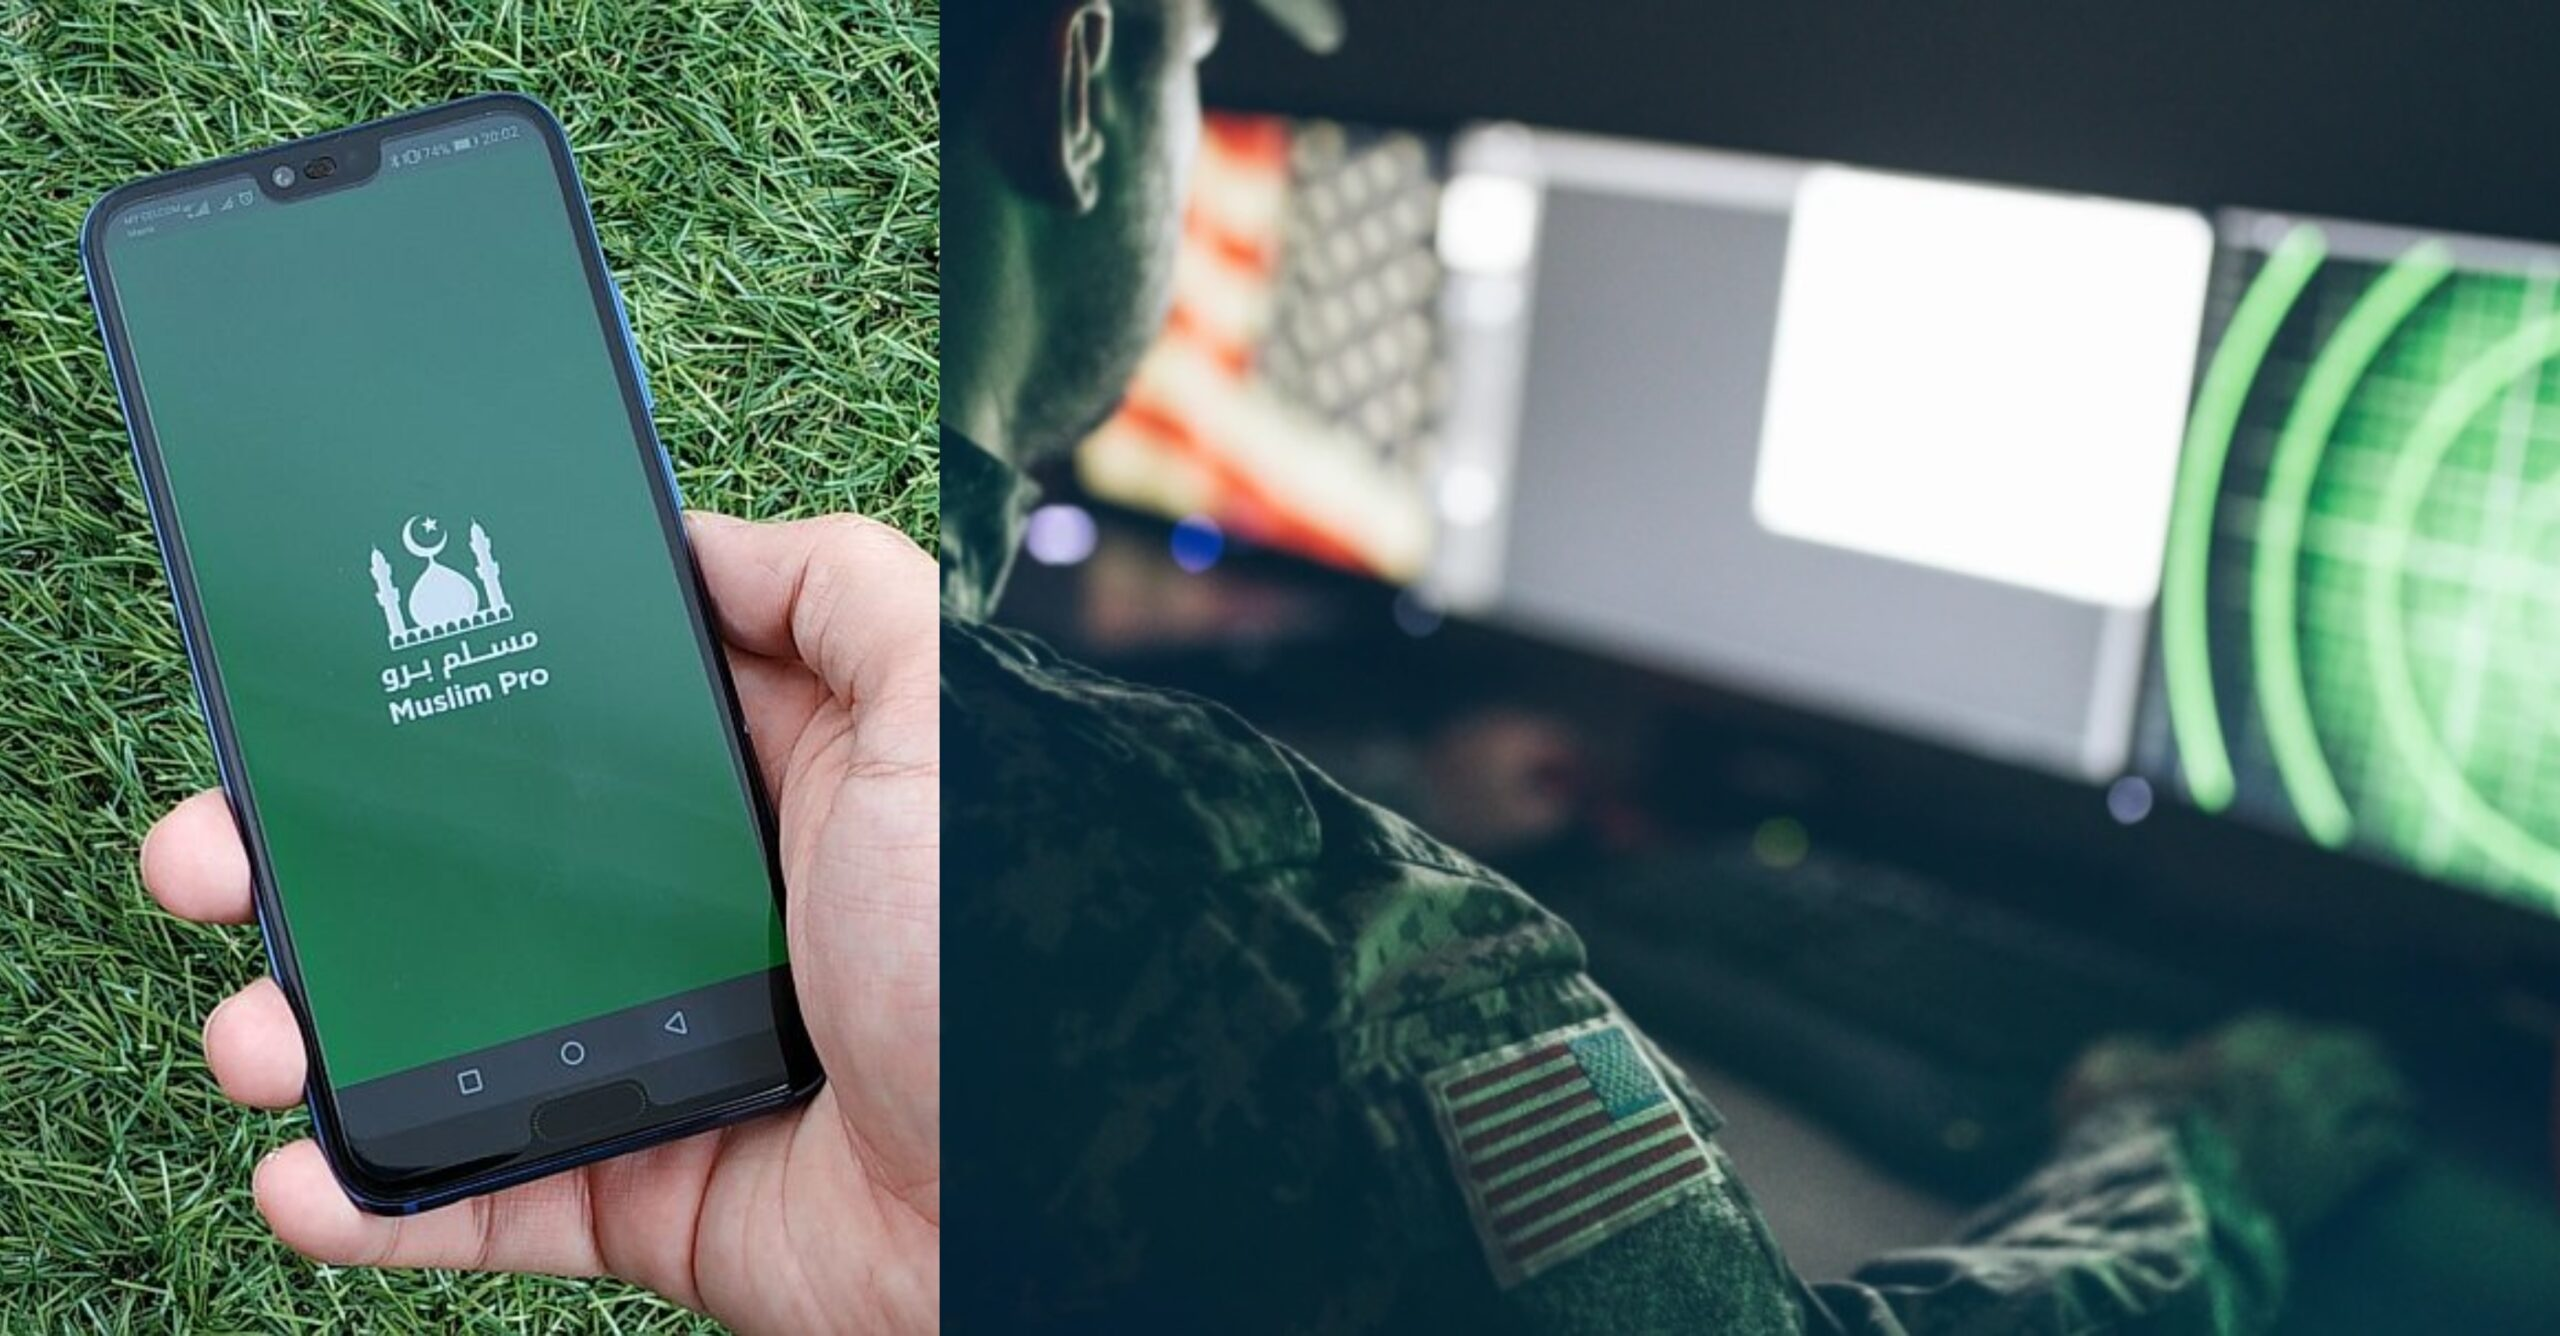 Muslim prayer app found selling location data to US military: report